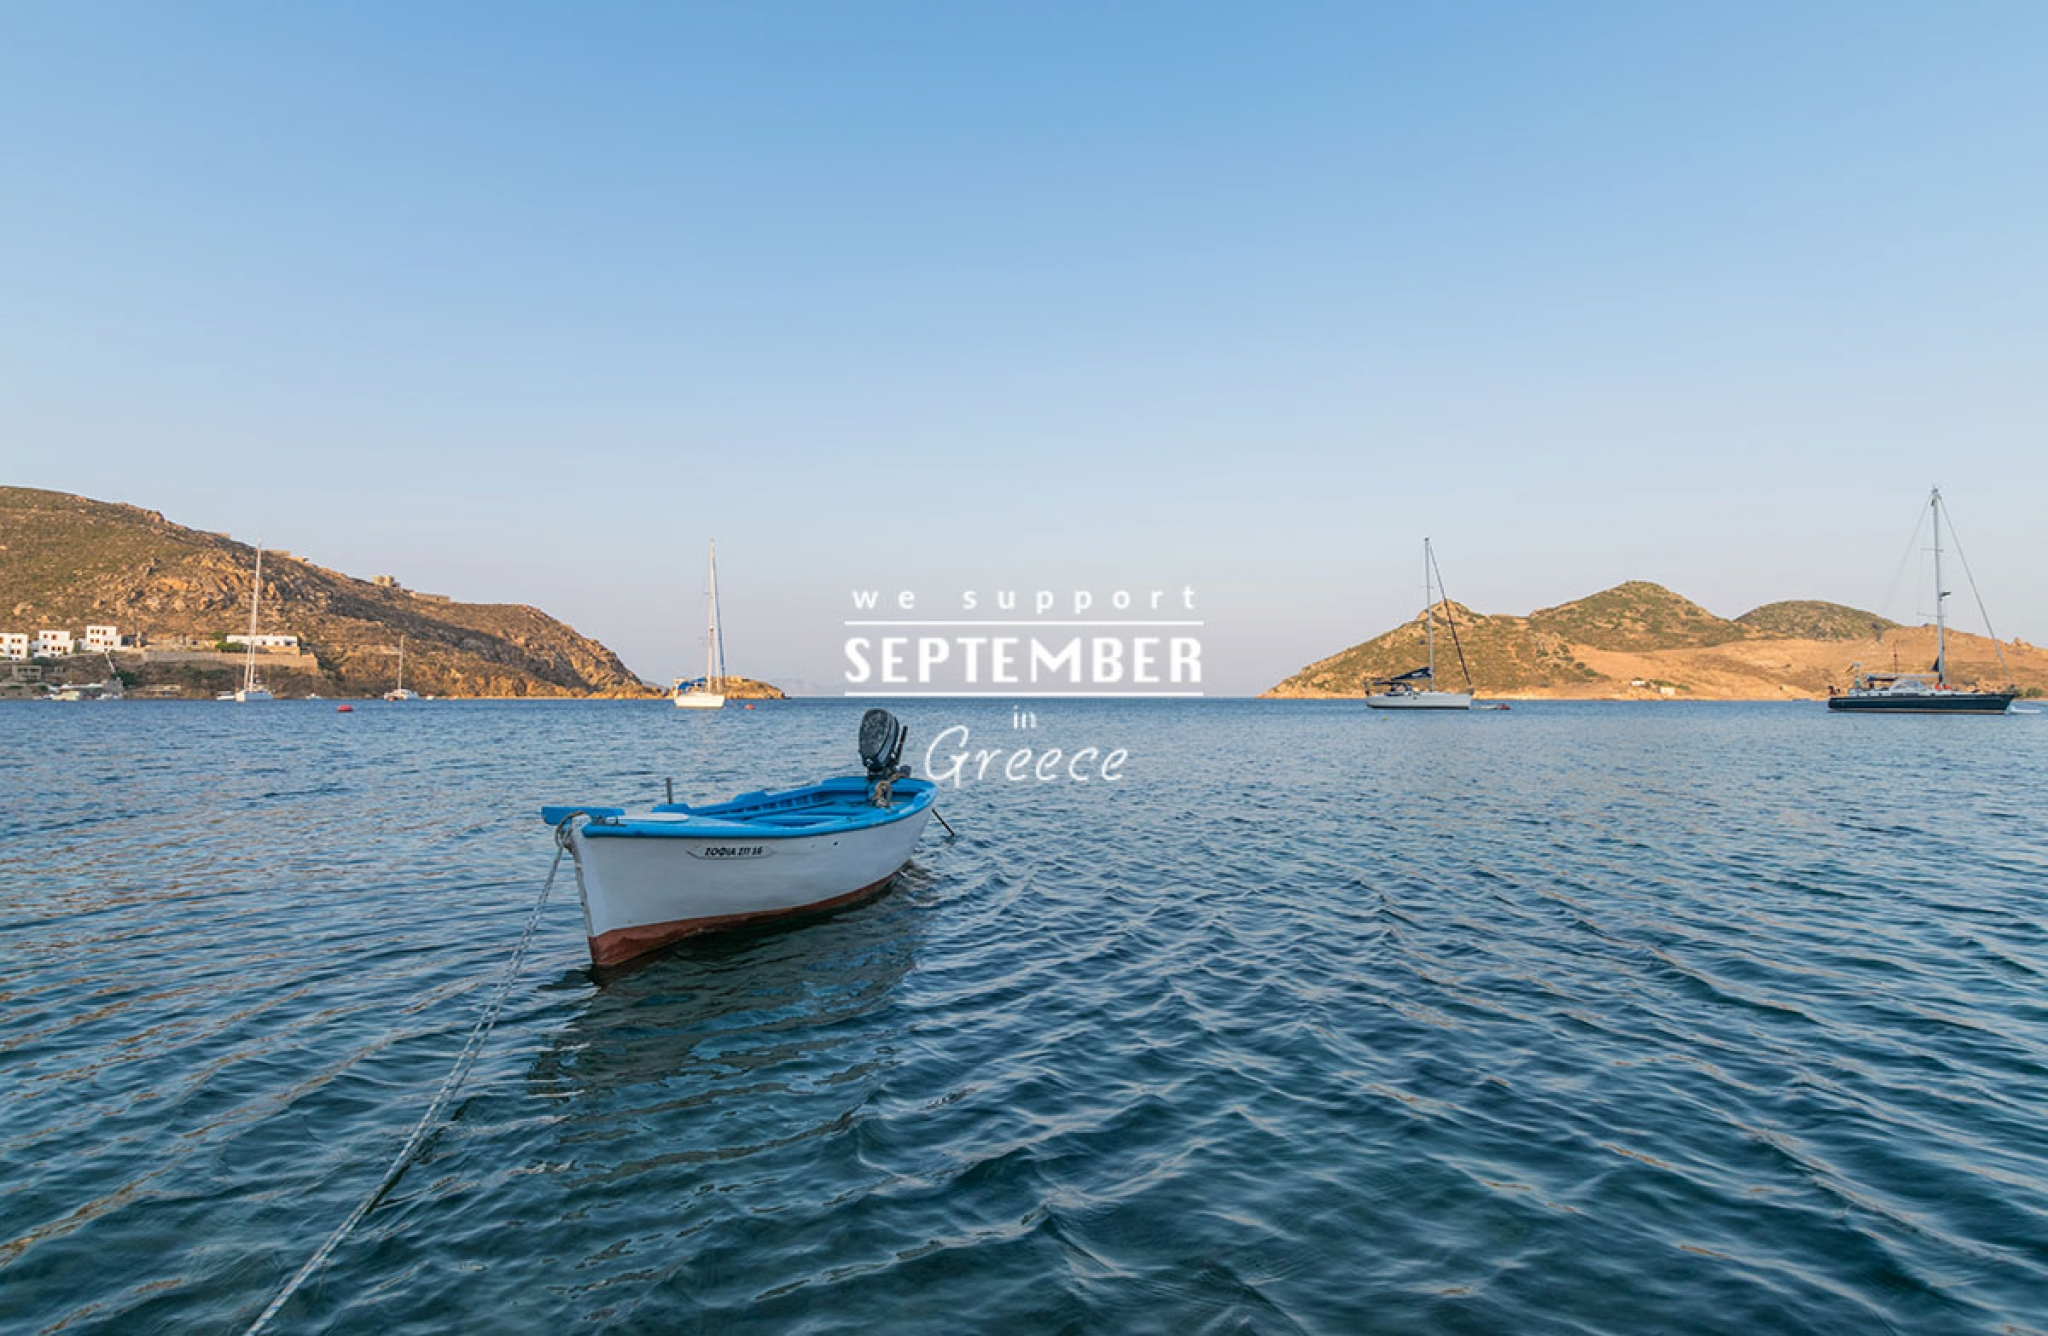 September in Greece